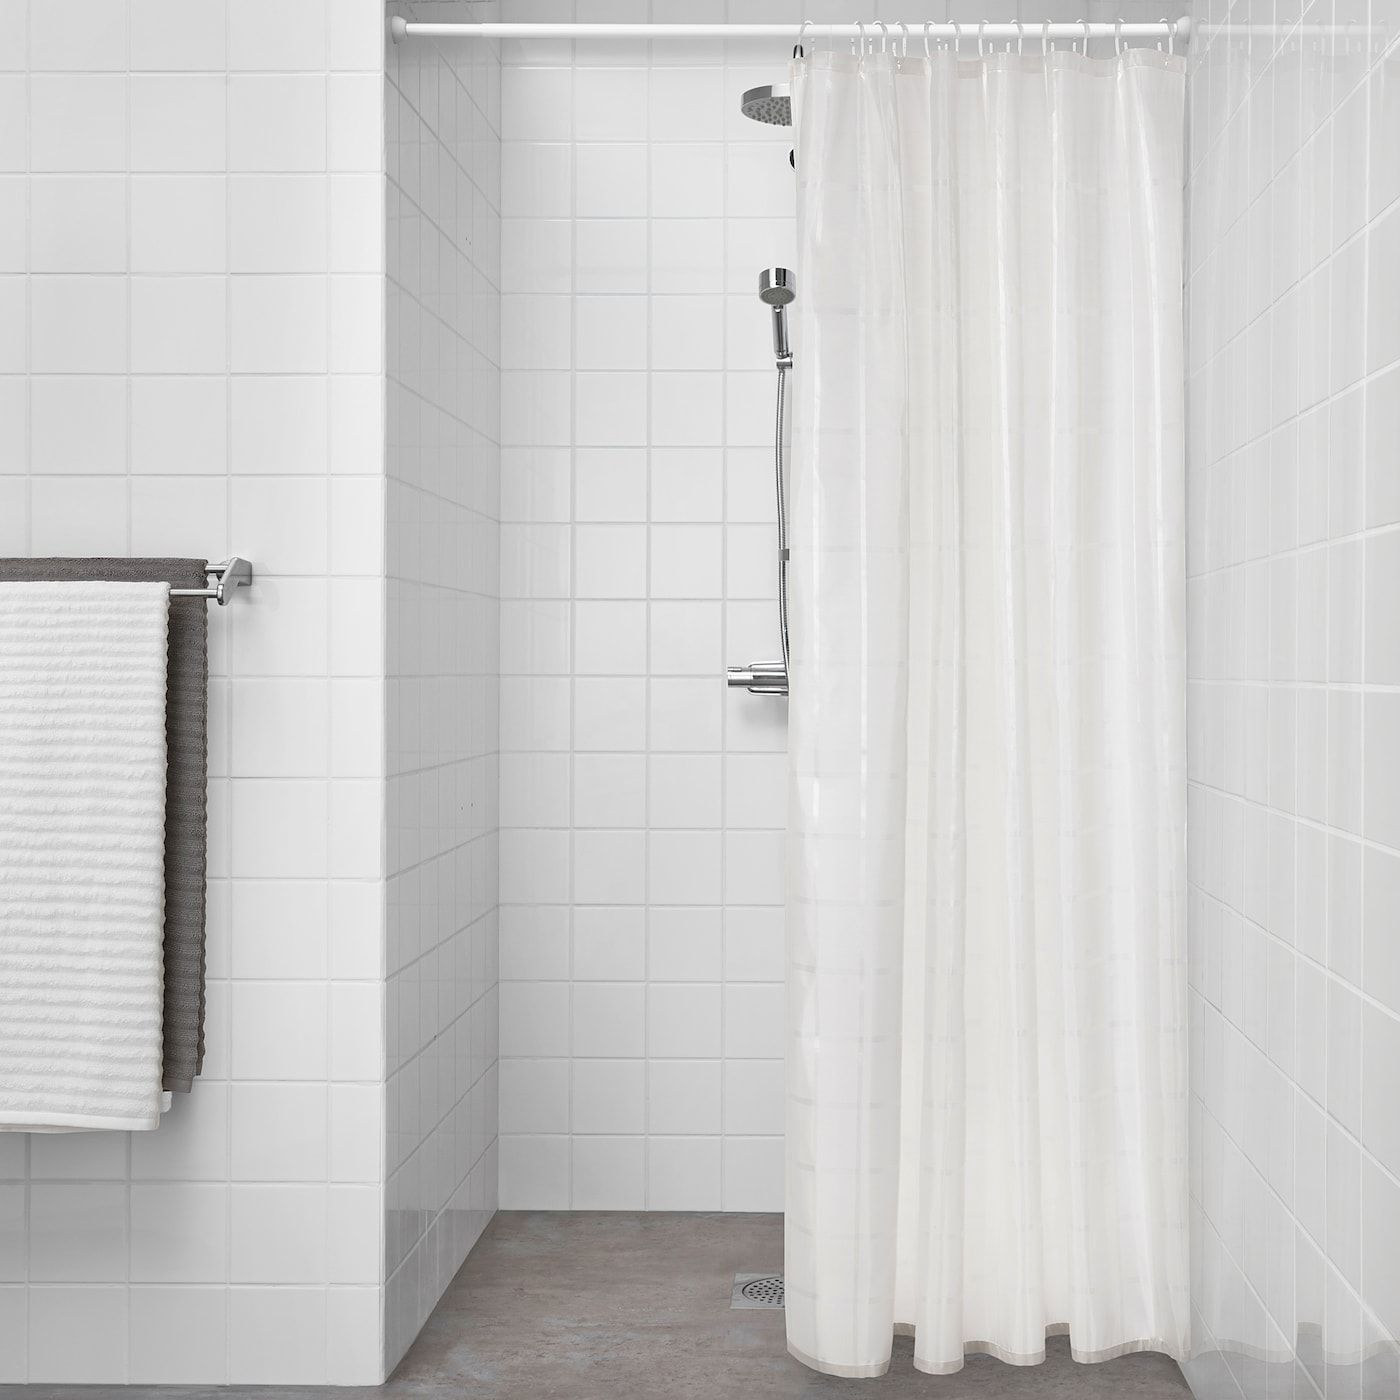 Ikea Klockaren Shower Curtain Off White In 2020 Fabric Shower